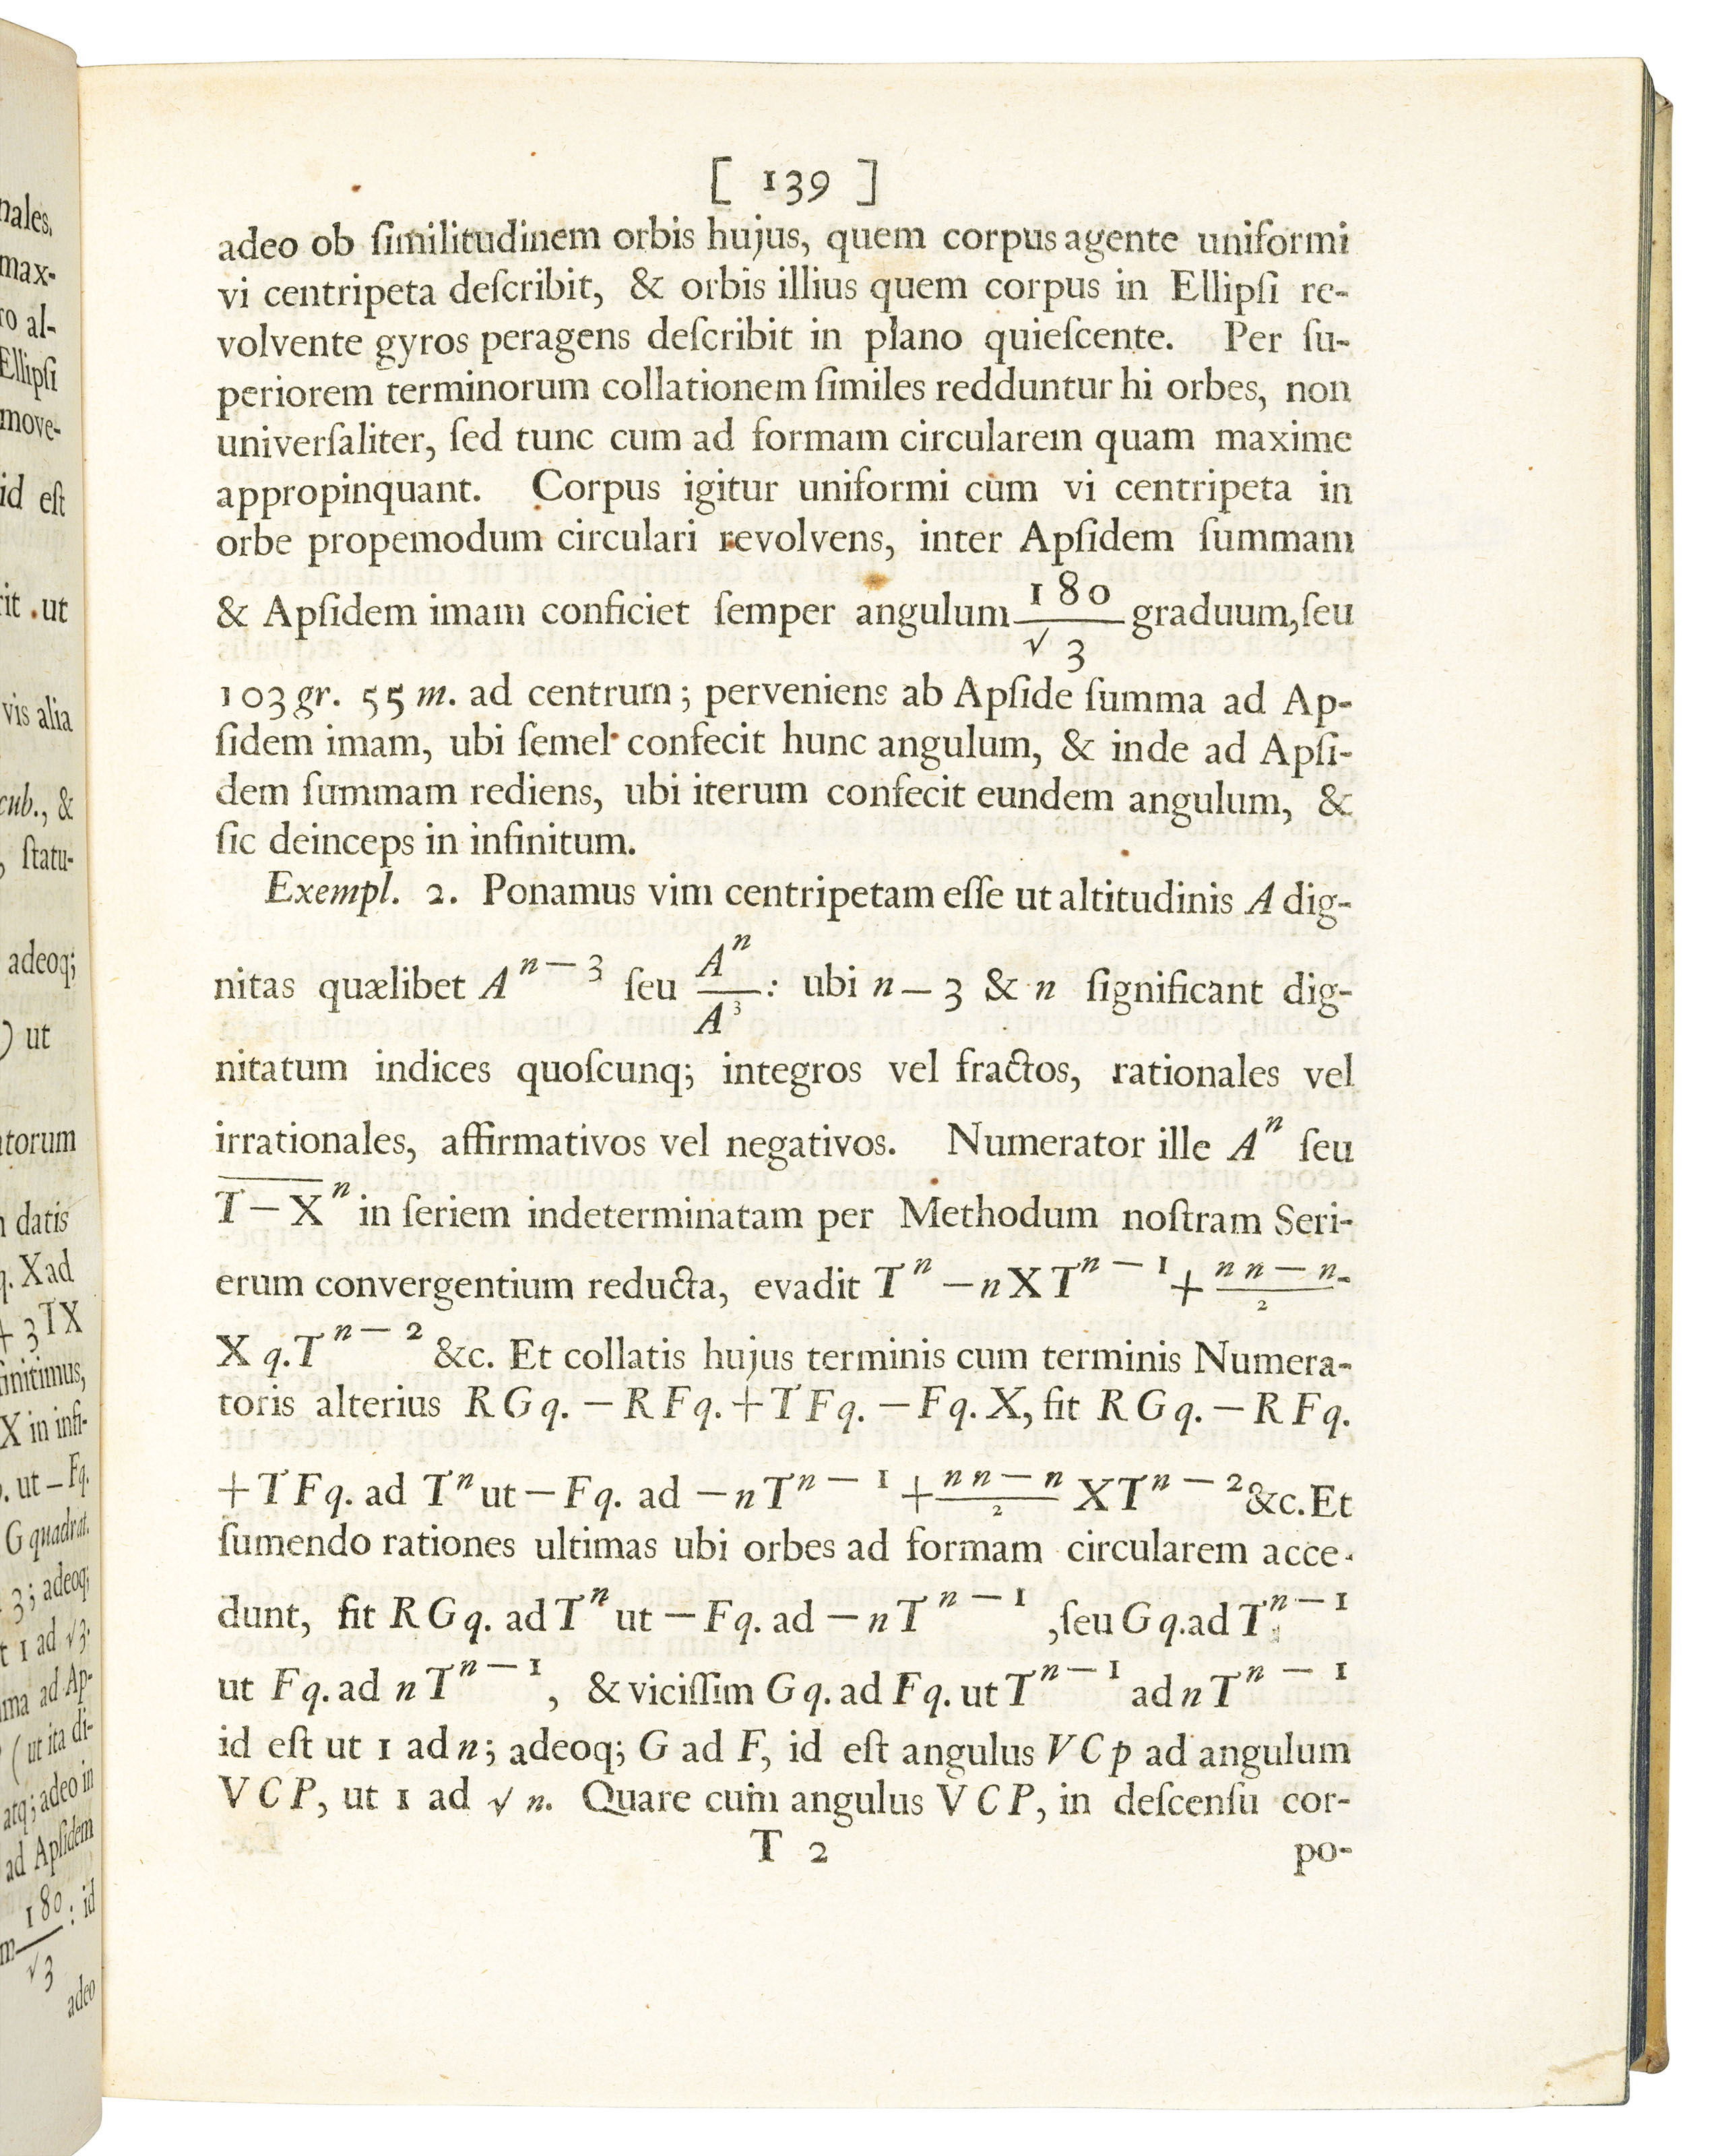 NEWTON, Sir Isaac (1642-1727). Philosophiae naturalis principia mathematica. Edited by Edmond Halley (1656-1743). London: Joseph Streater for the Royal Society [at the expense of Edmond Halley], to be sold by various booksellers, 1687.